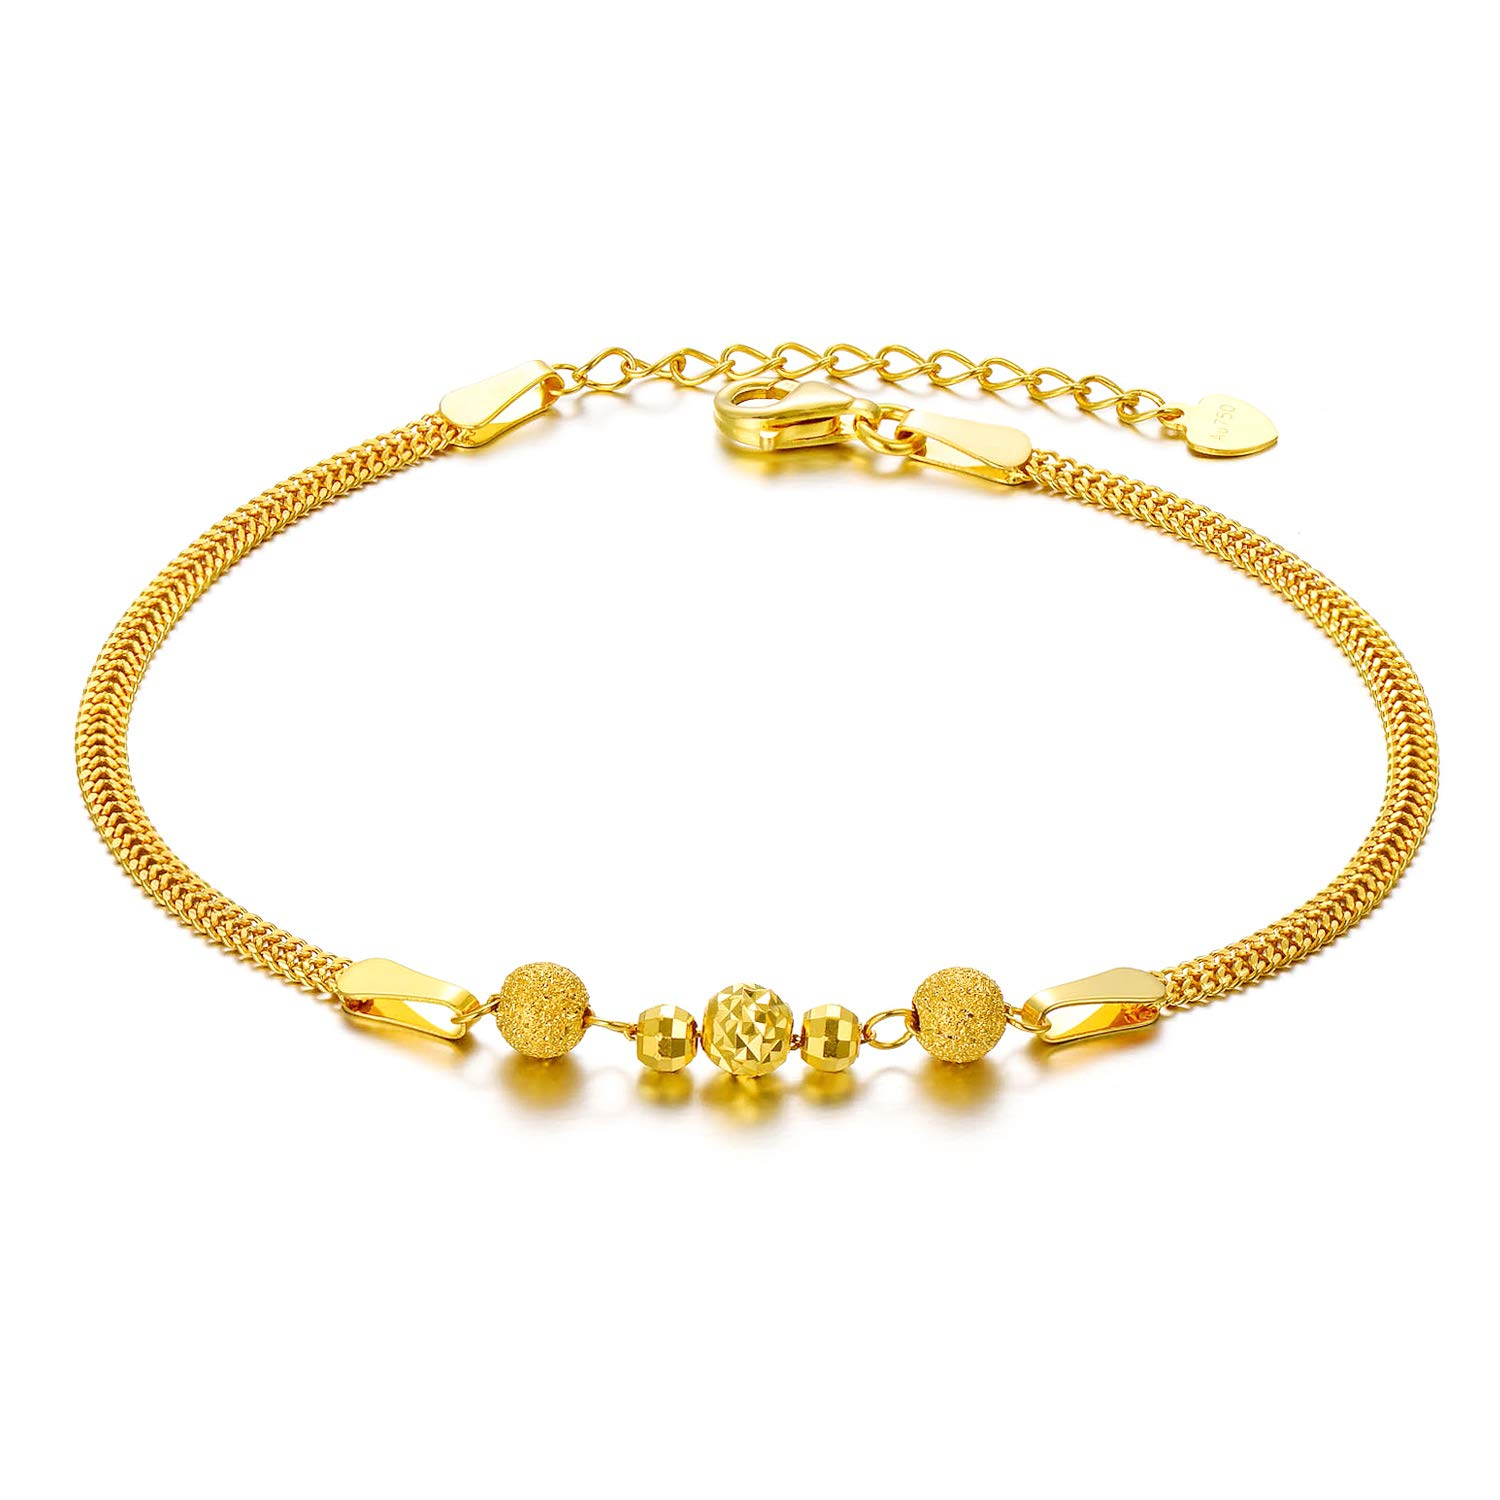 12a08144335a1 SISGEM Solid 18k Yellow Gold Bracelets for Women, Real Gold Chain Bracelet  Adjustable (2.3 mm, 6.5